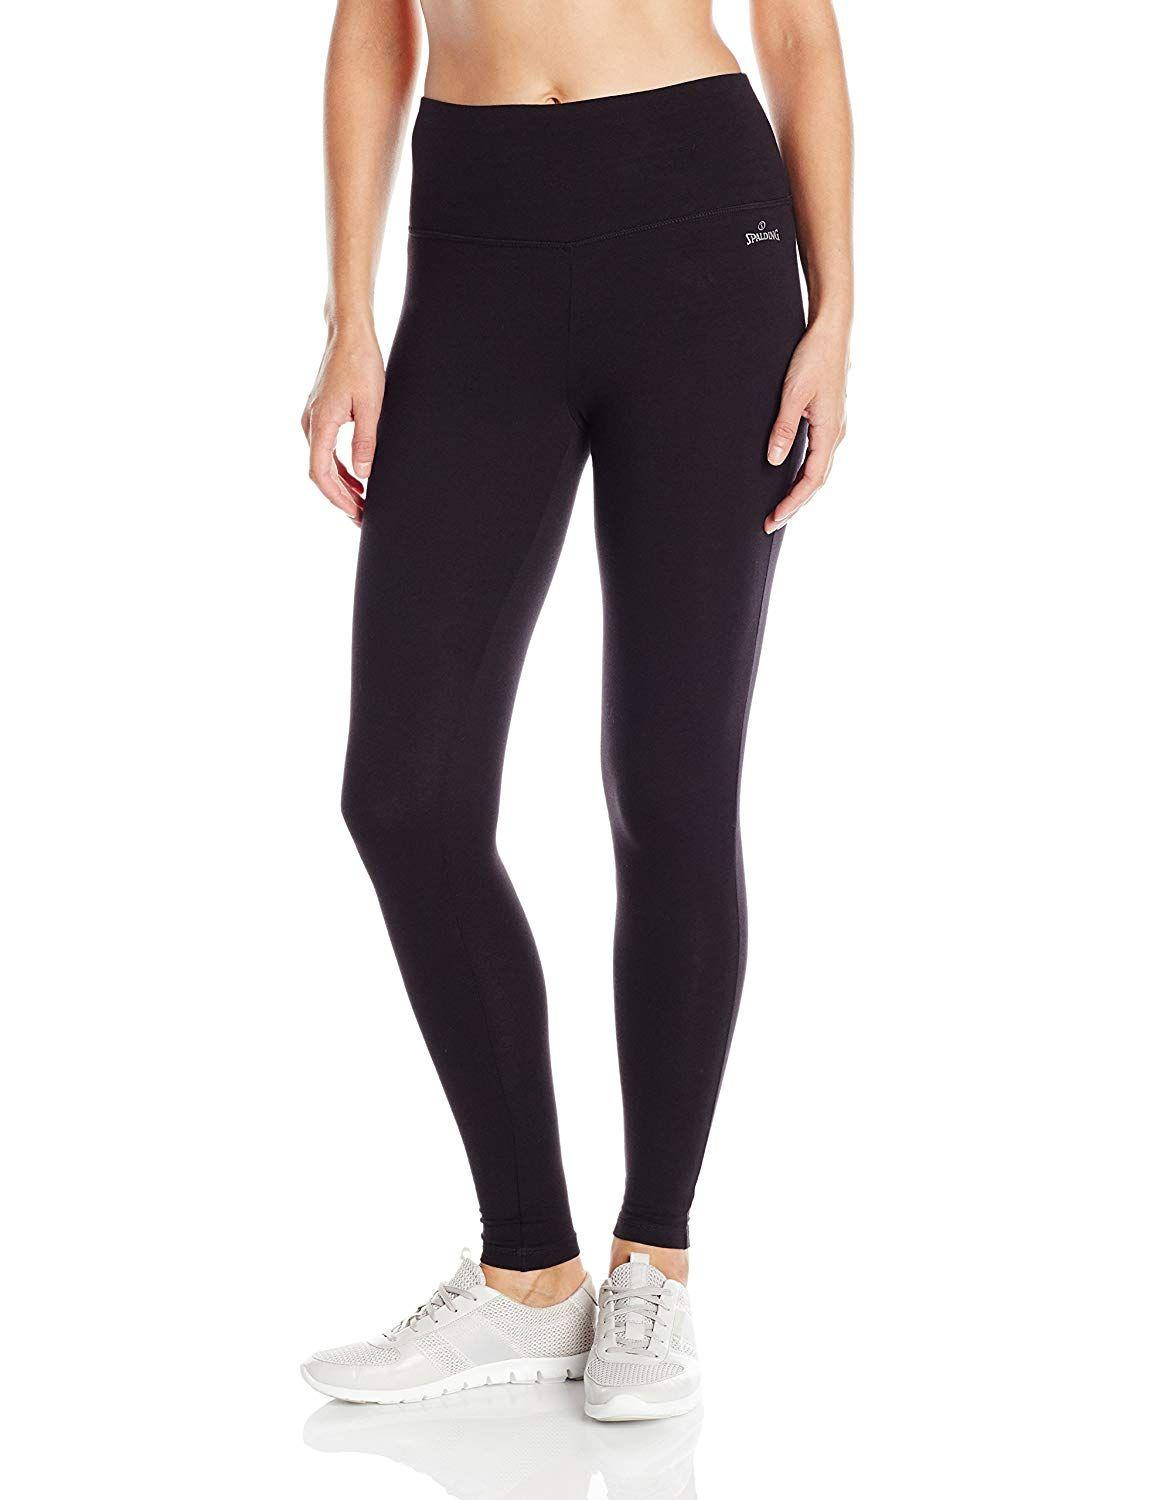 """<h3><strong><a href=""""https://www.amazon.com/Spalding-Womens-High-Waisted-Legging-Black/dp/B01IDGA1LU"""" rel=""""nofollow noopener"""" target=""""_blank"""" data-ylk=""""slk:Spalding High-Waisted Legging"""" class=""""link rapid-noclick-resp"""">Spalding High-Waisted Legging</a></strong></h3> <p>4.1 out of 5 stars and 72 reviews</p> <p><strong>Promising Review:</strong> Most users have been longtime fans of this specific pair of leggings. One Amazon customer even calls them the """"<a href=""""https://www.amazon.com/gp/customer-reviews/RLA13X11VAEXQ"""" rel=""""nofollow noopener"""" target=""""_blank"""" data-ylk=""""slk:best leggings ever"""" class=""""link rapid-noclick-resp"""">best leggings ever</a> """" citing, """"These are by far the best leggings I've ever worn. The high waist makes them really comfortable and they stay put. They're not really see through when you bend over either. I've had two pairs for a couple years and no holes yet! I have a pair for everyday.""""</p> <br> <br> <strong>Spalding</strong> High-Waisted Legging, $13.29, available at <a href=""""https://www.amazon.com/Spalding-Womens-High-Waisted-Legging-Medium/dp/B01IDGA1LU"""" rel=""""nofollow noopener"""" target=""""_blank"""" data-ylk=""""slk:Amazon"""" class=""""link rapid-noclick-resp"""">Amazon</a>"""